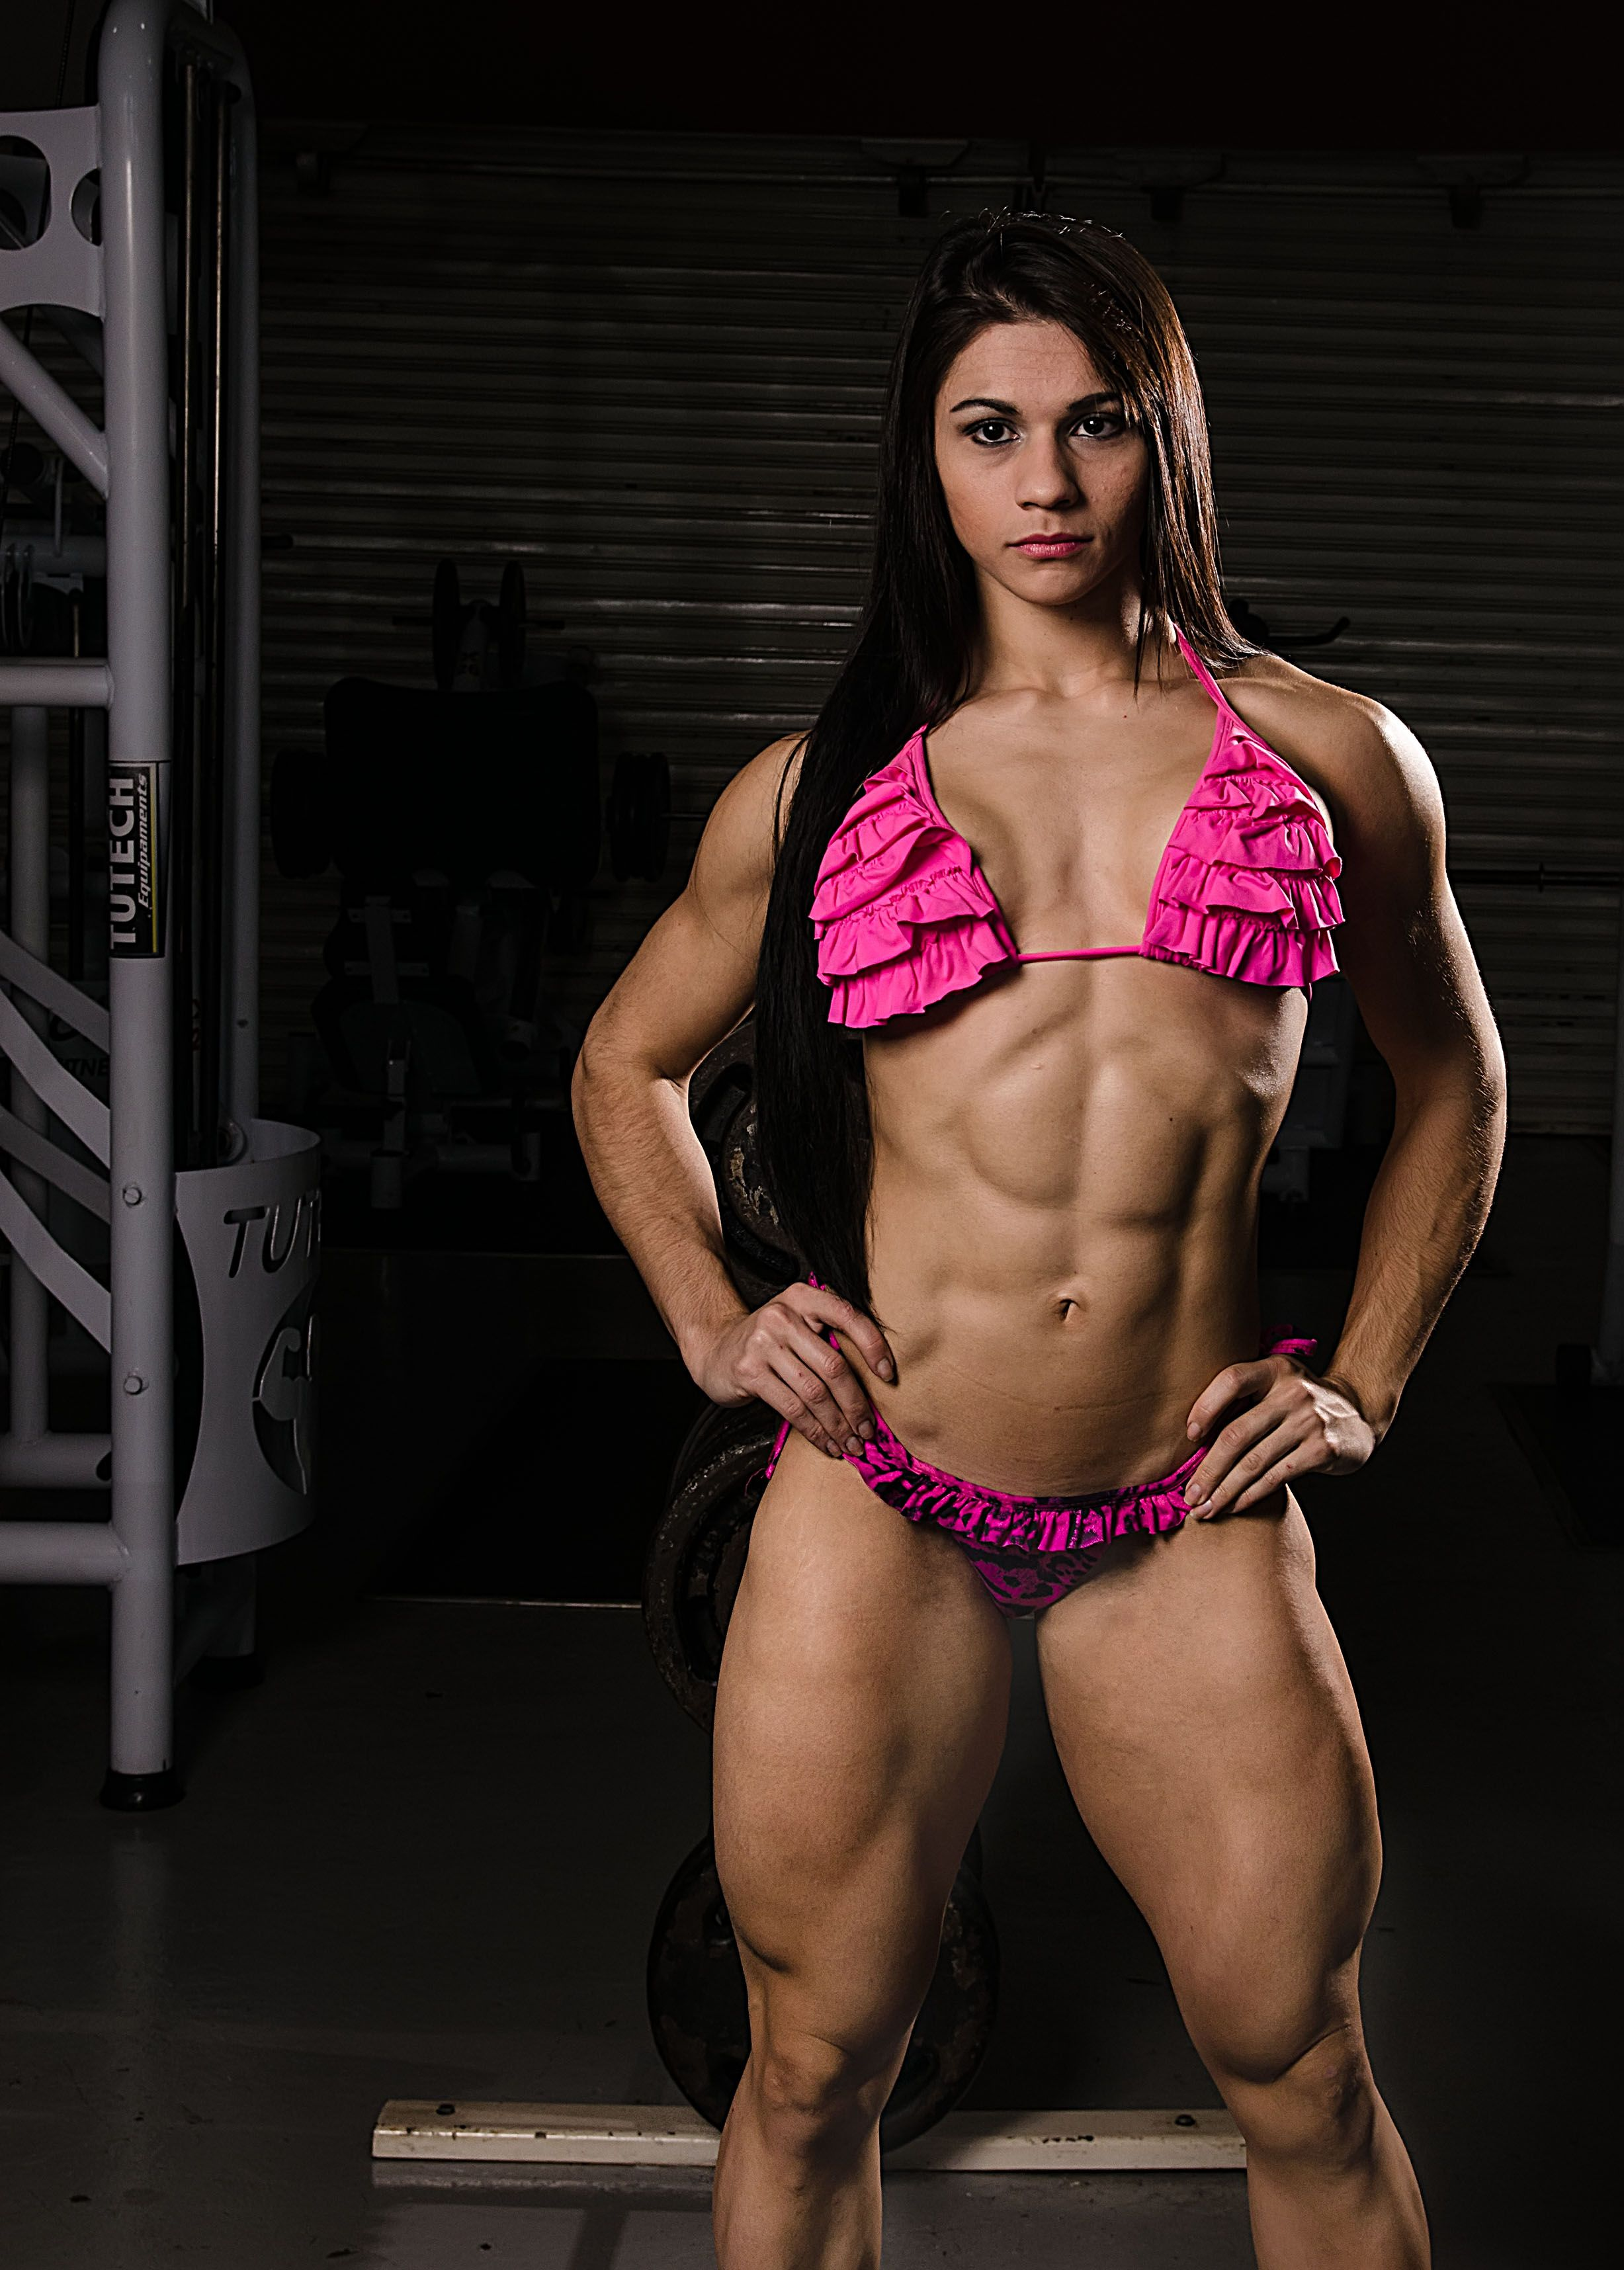 Nude Female Weightlifter